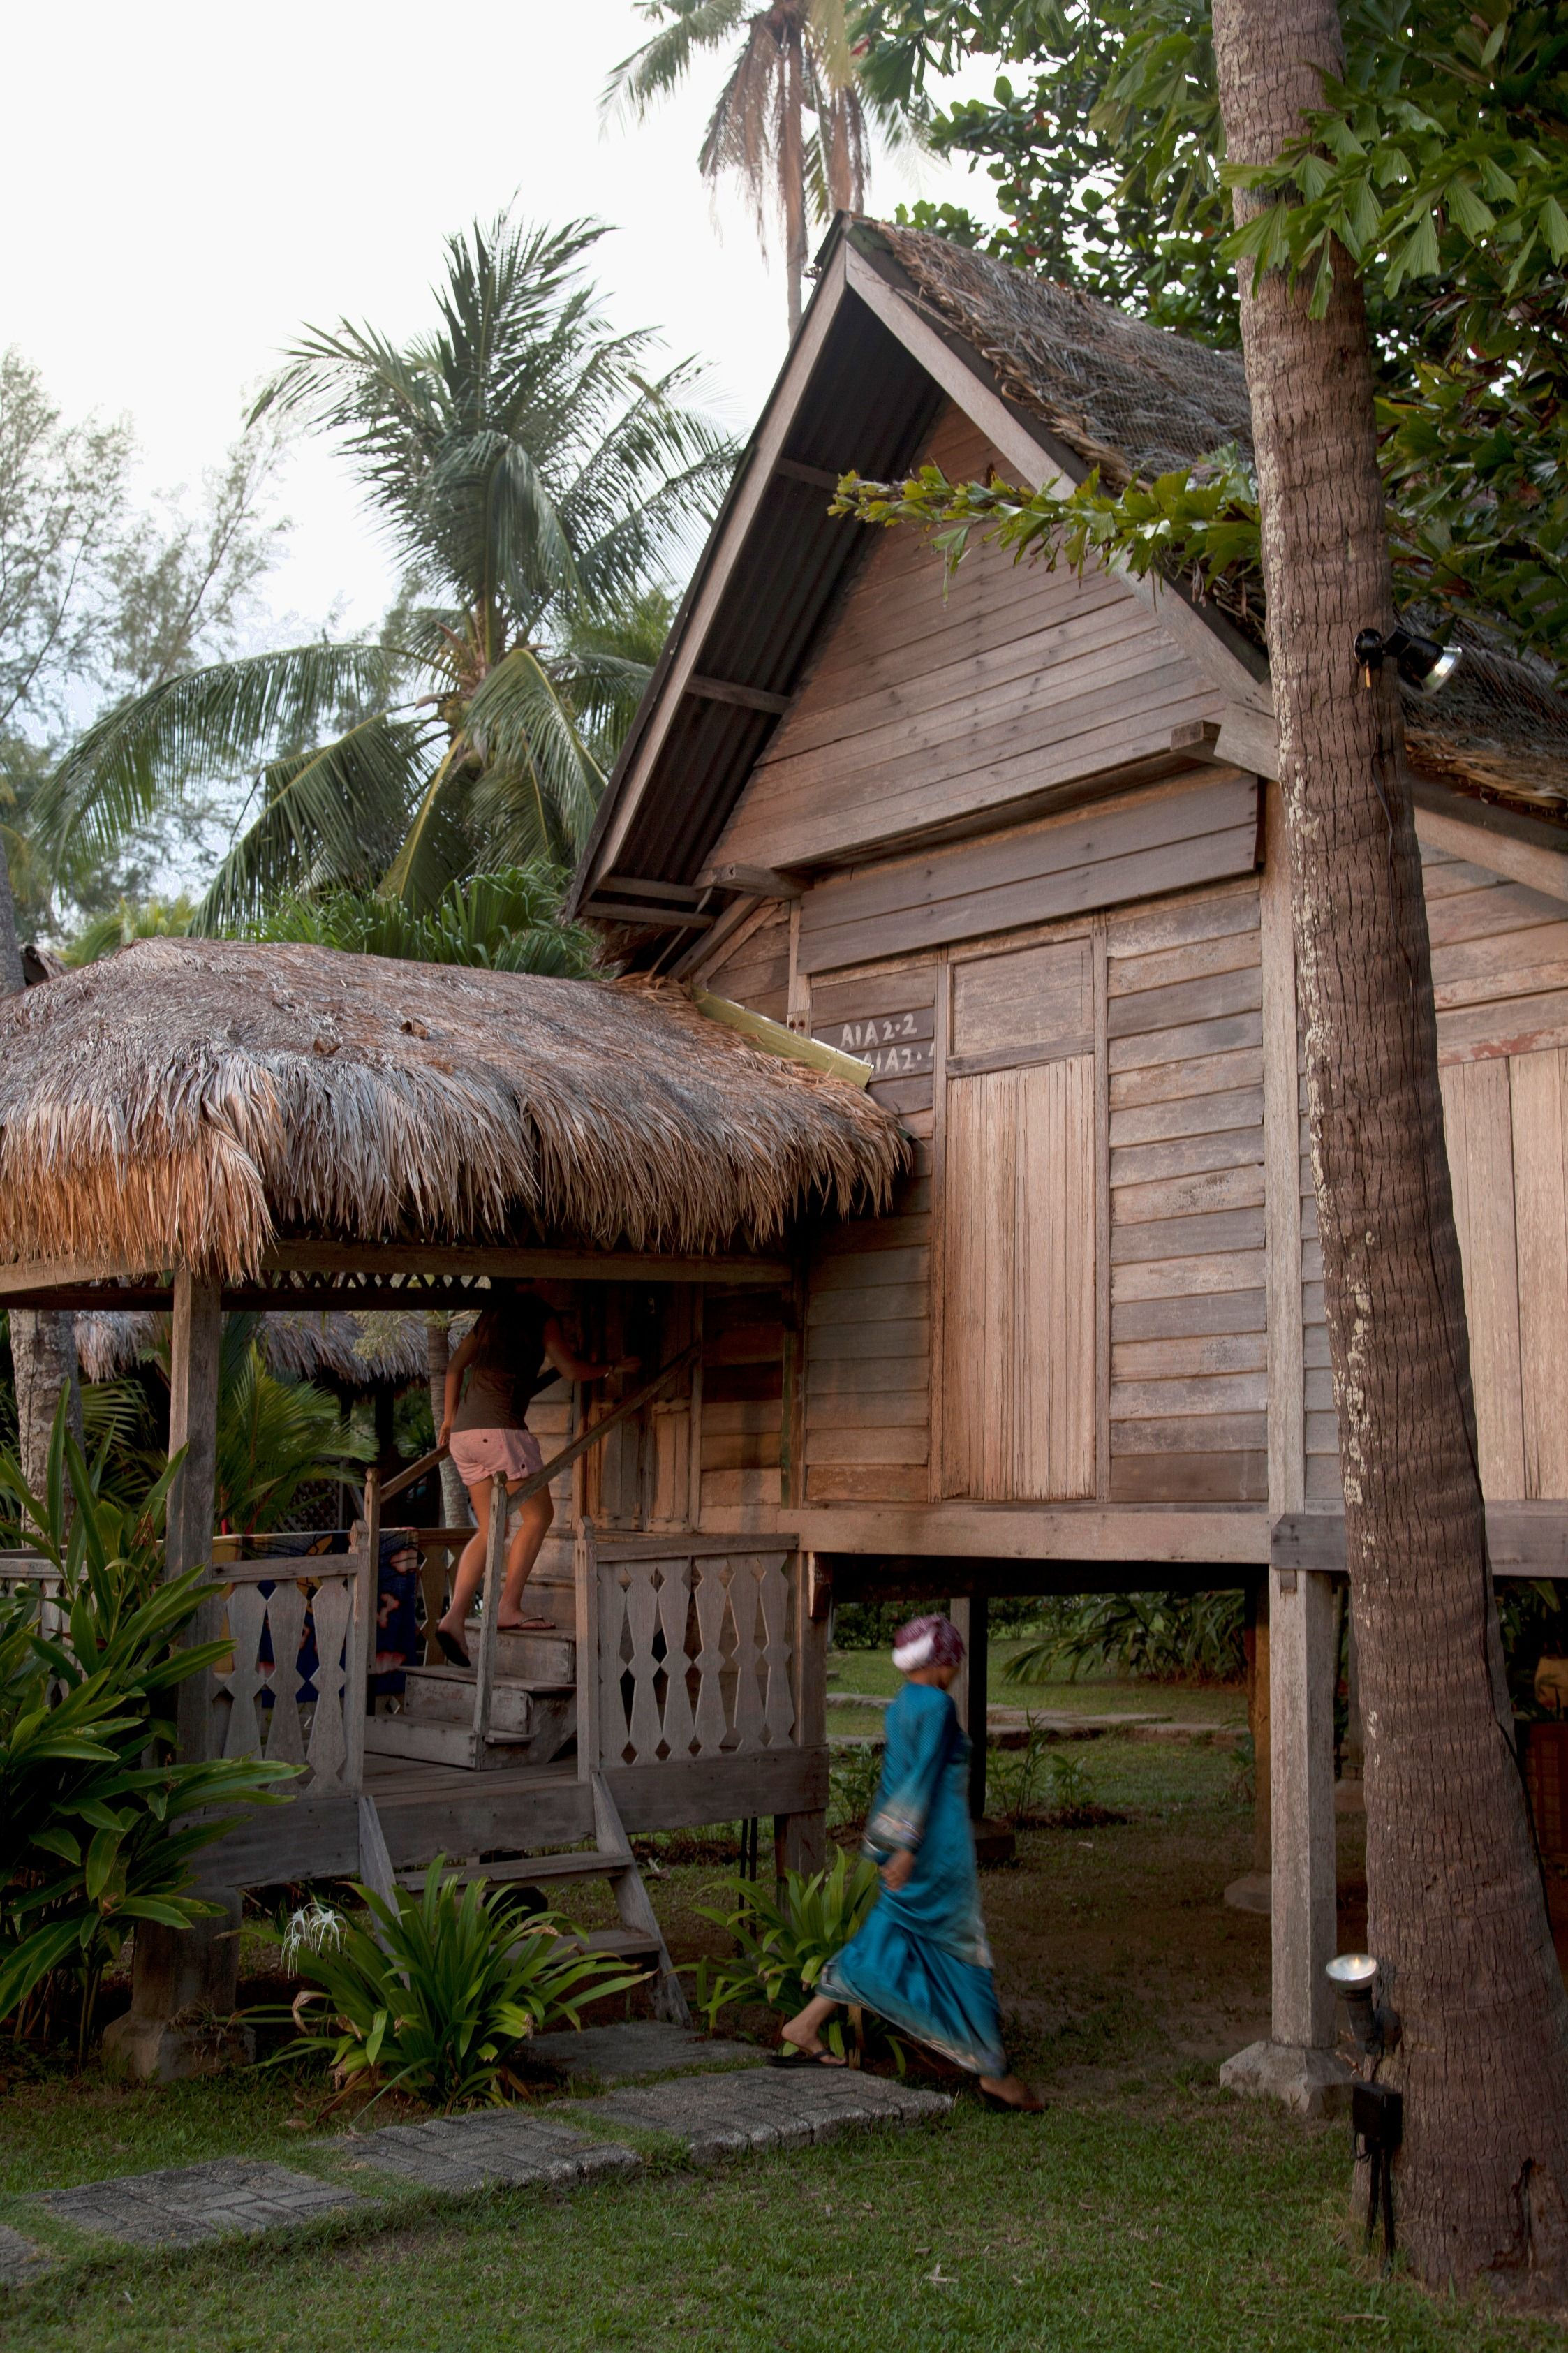 Interesting House Exterior Design In Kulai Malaysia: Pretty Awesome Tree House!!!! Traditional Malay Decor Of House BonTon Resort In Langkawi